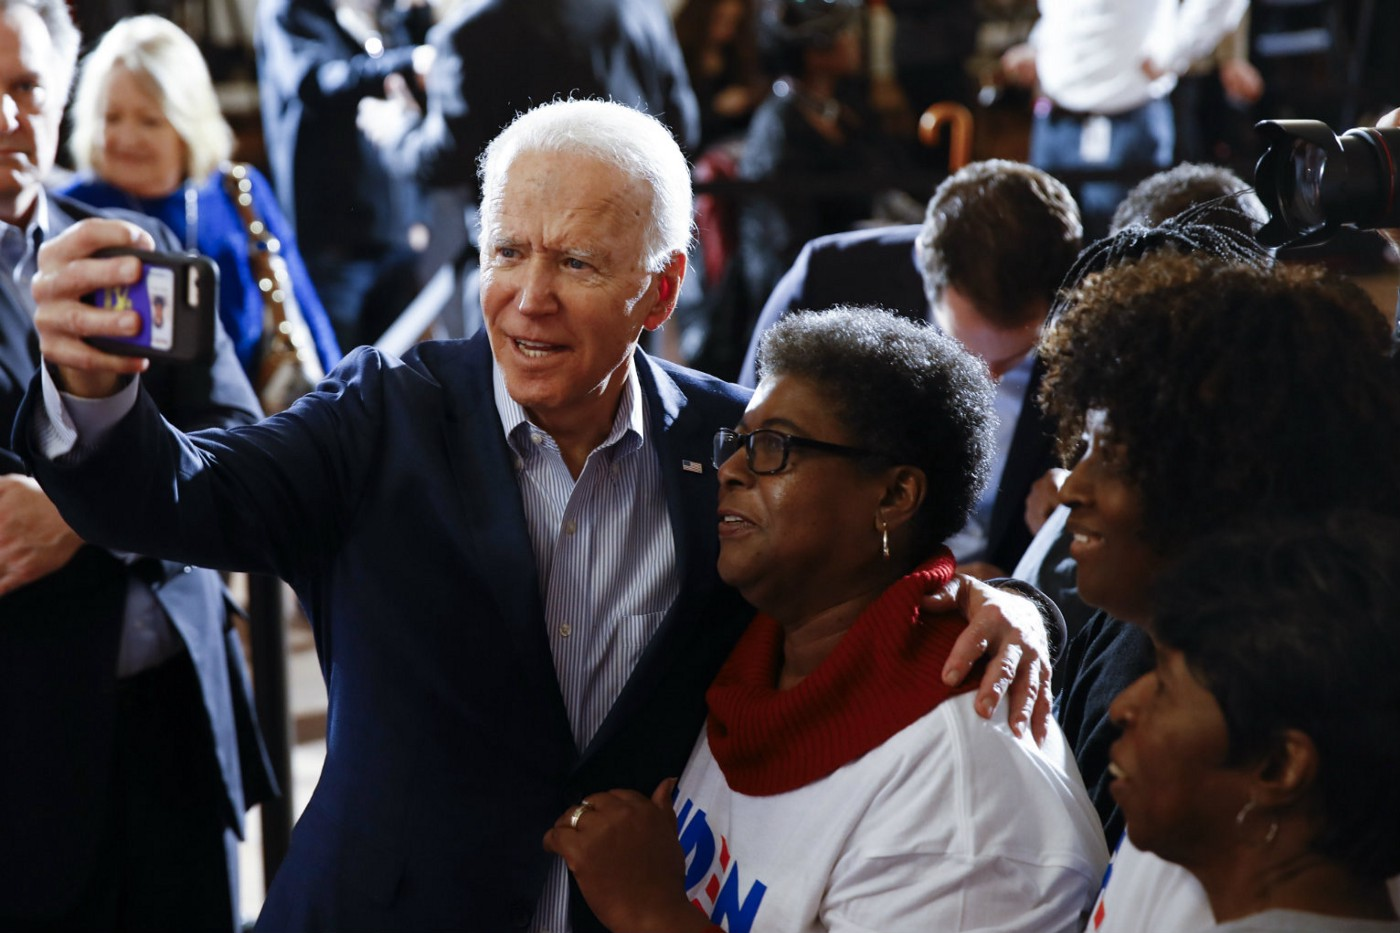 2/26/20 Joe Biden poses with a campaign supporter at an event.